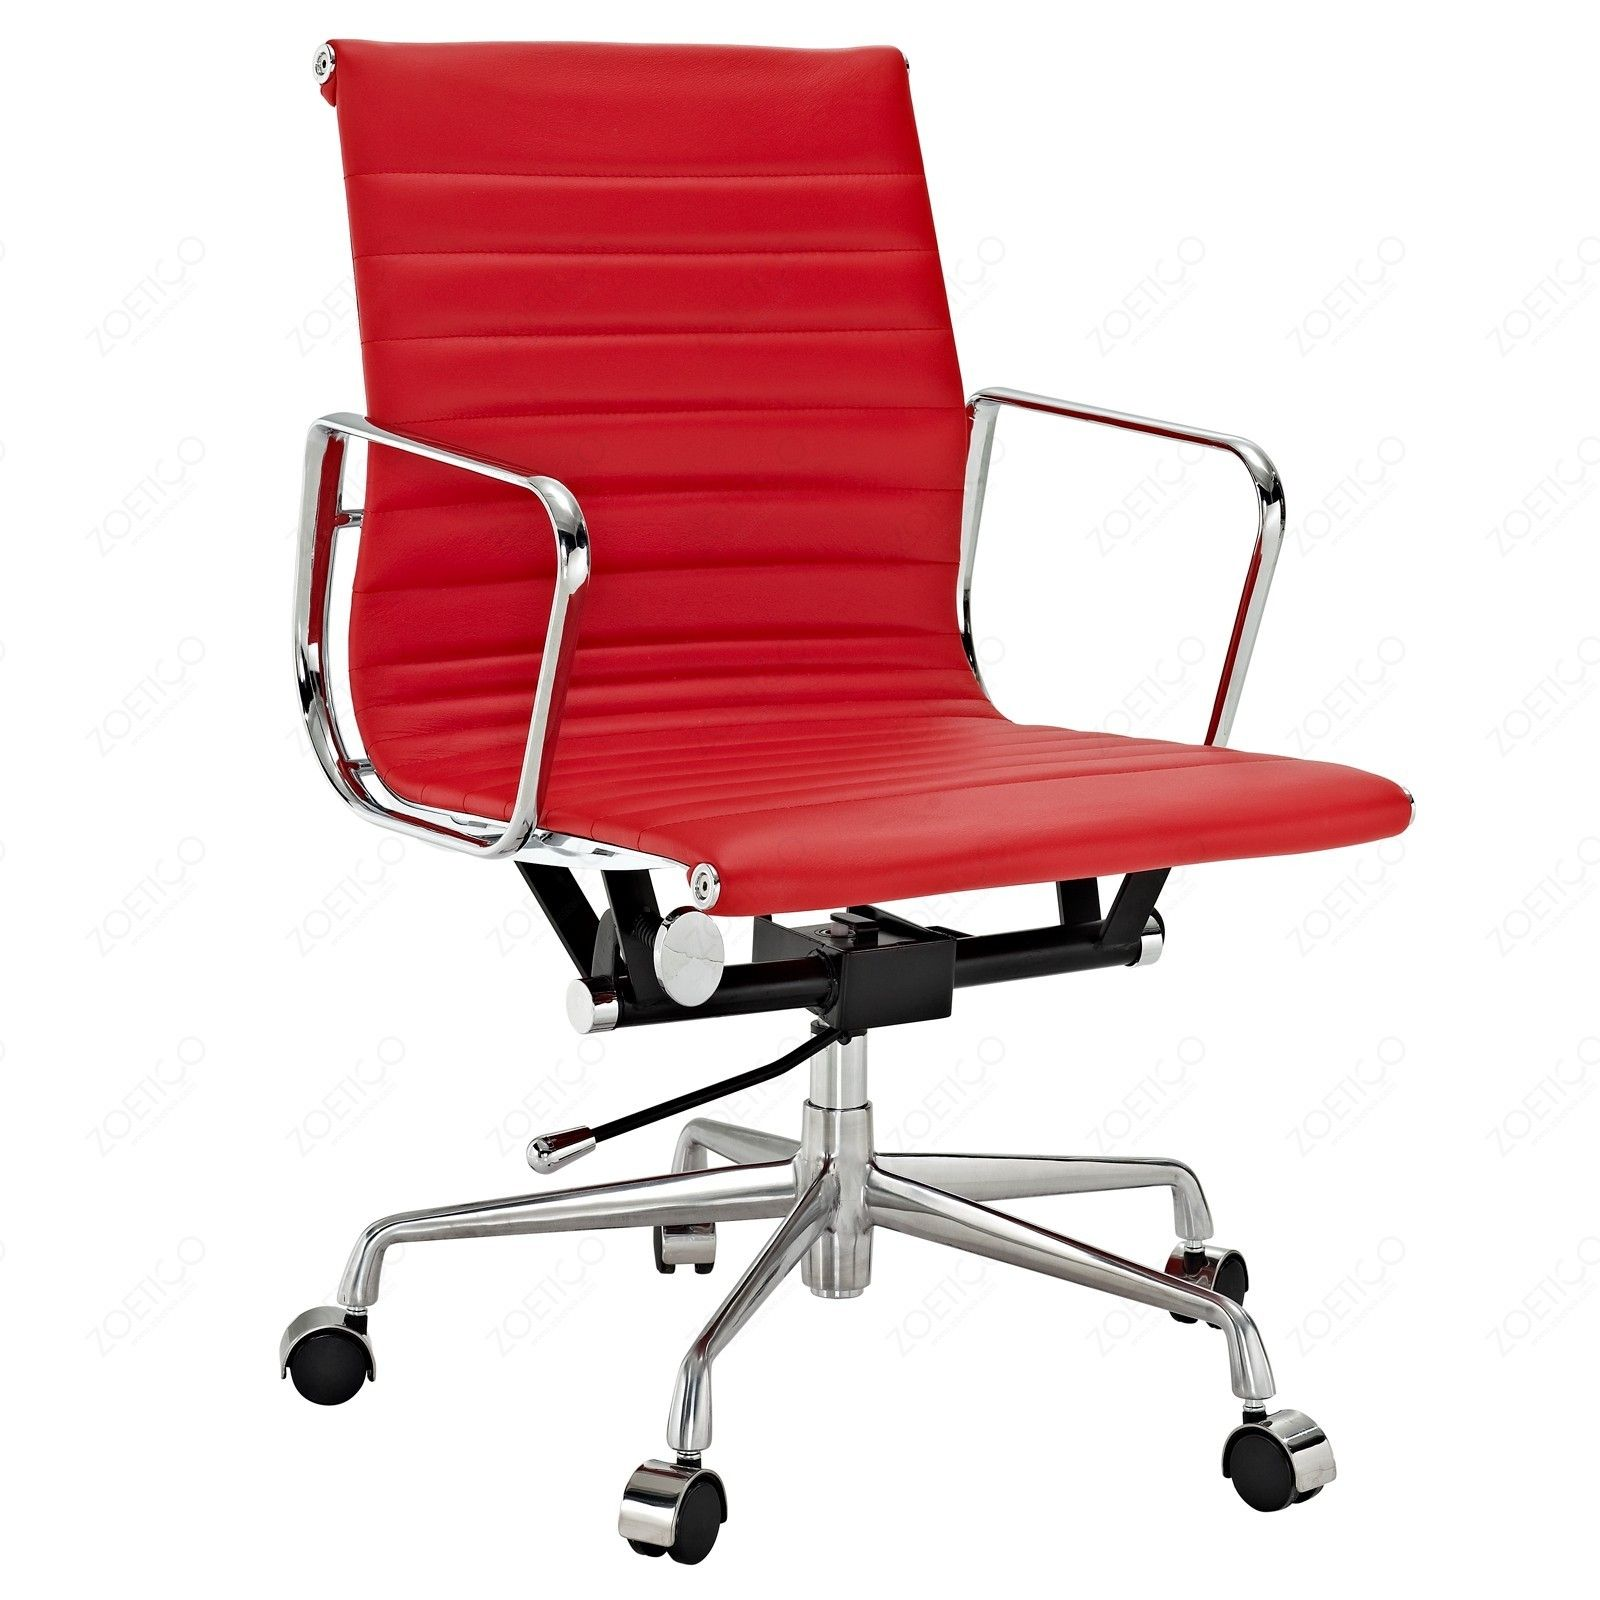 office chair chairs leather red executive luxury